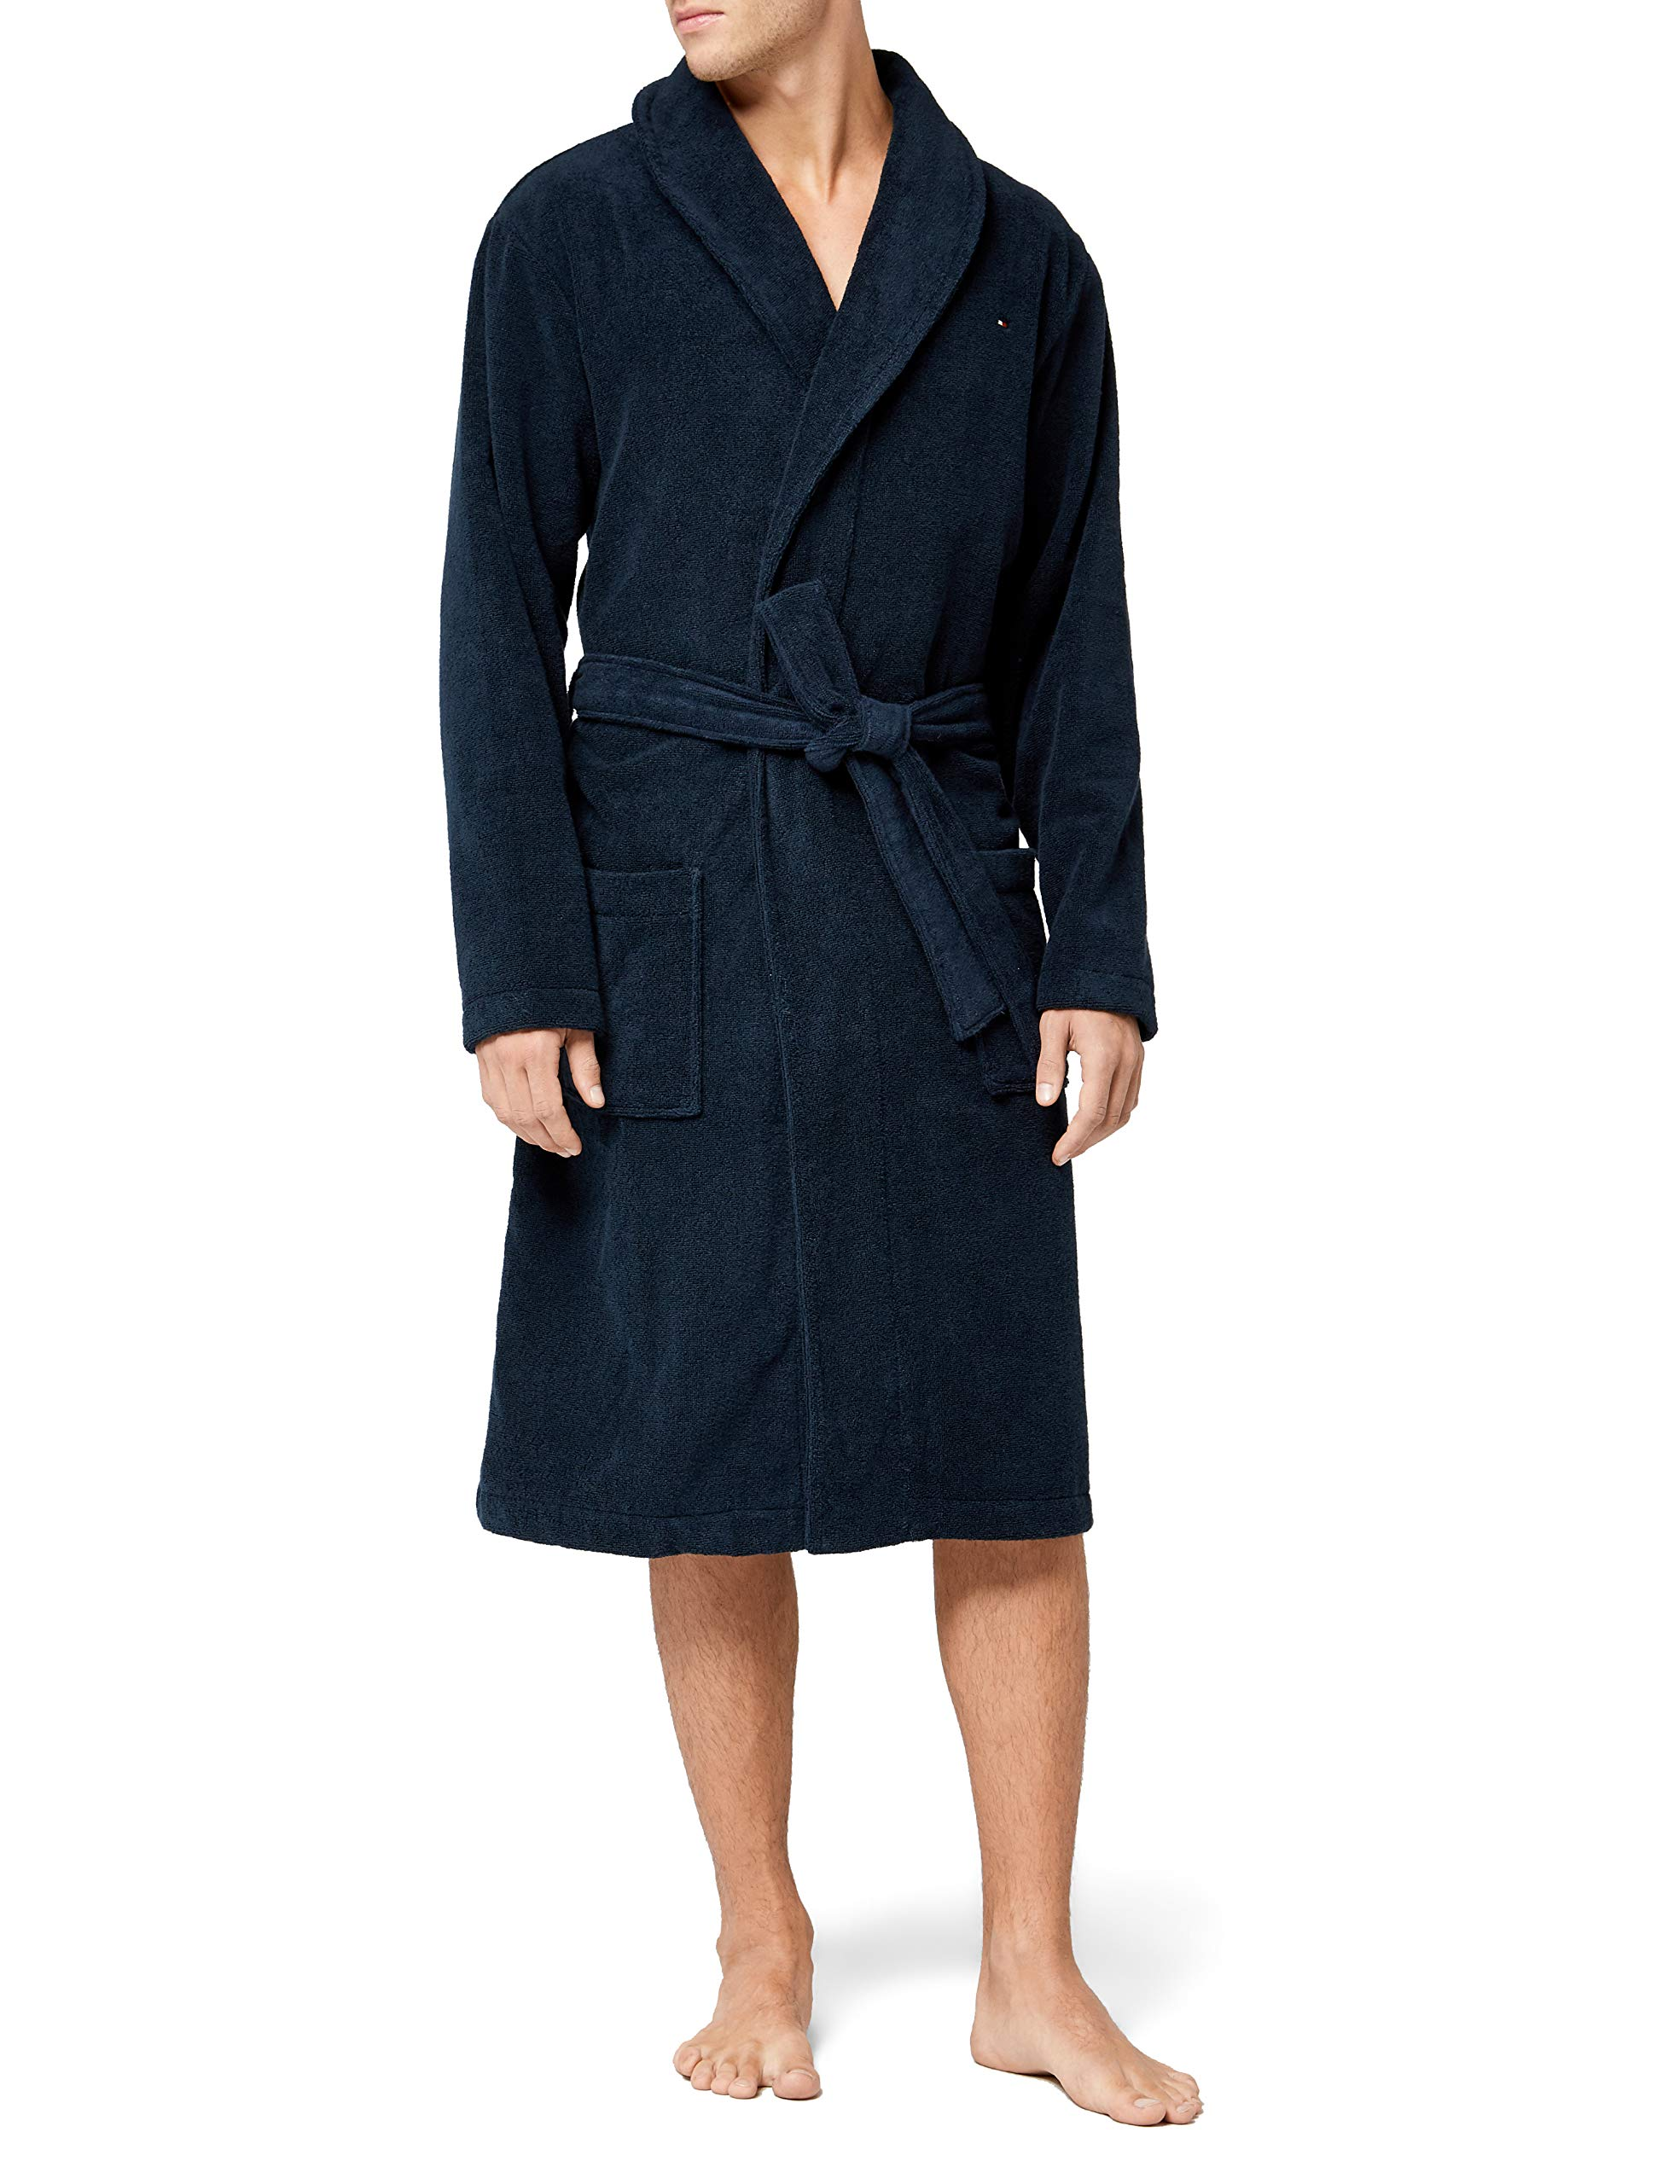 Tommy Hilfiger - 2S87905539 - Icon Bathrobe - Peignoir - Homme product image f2c7e678012